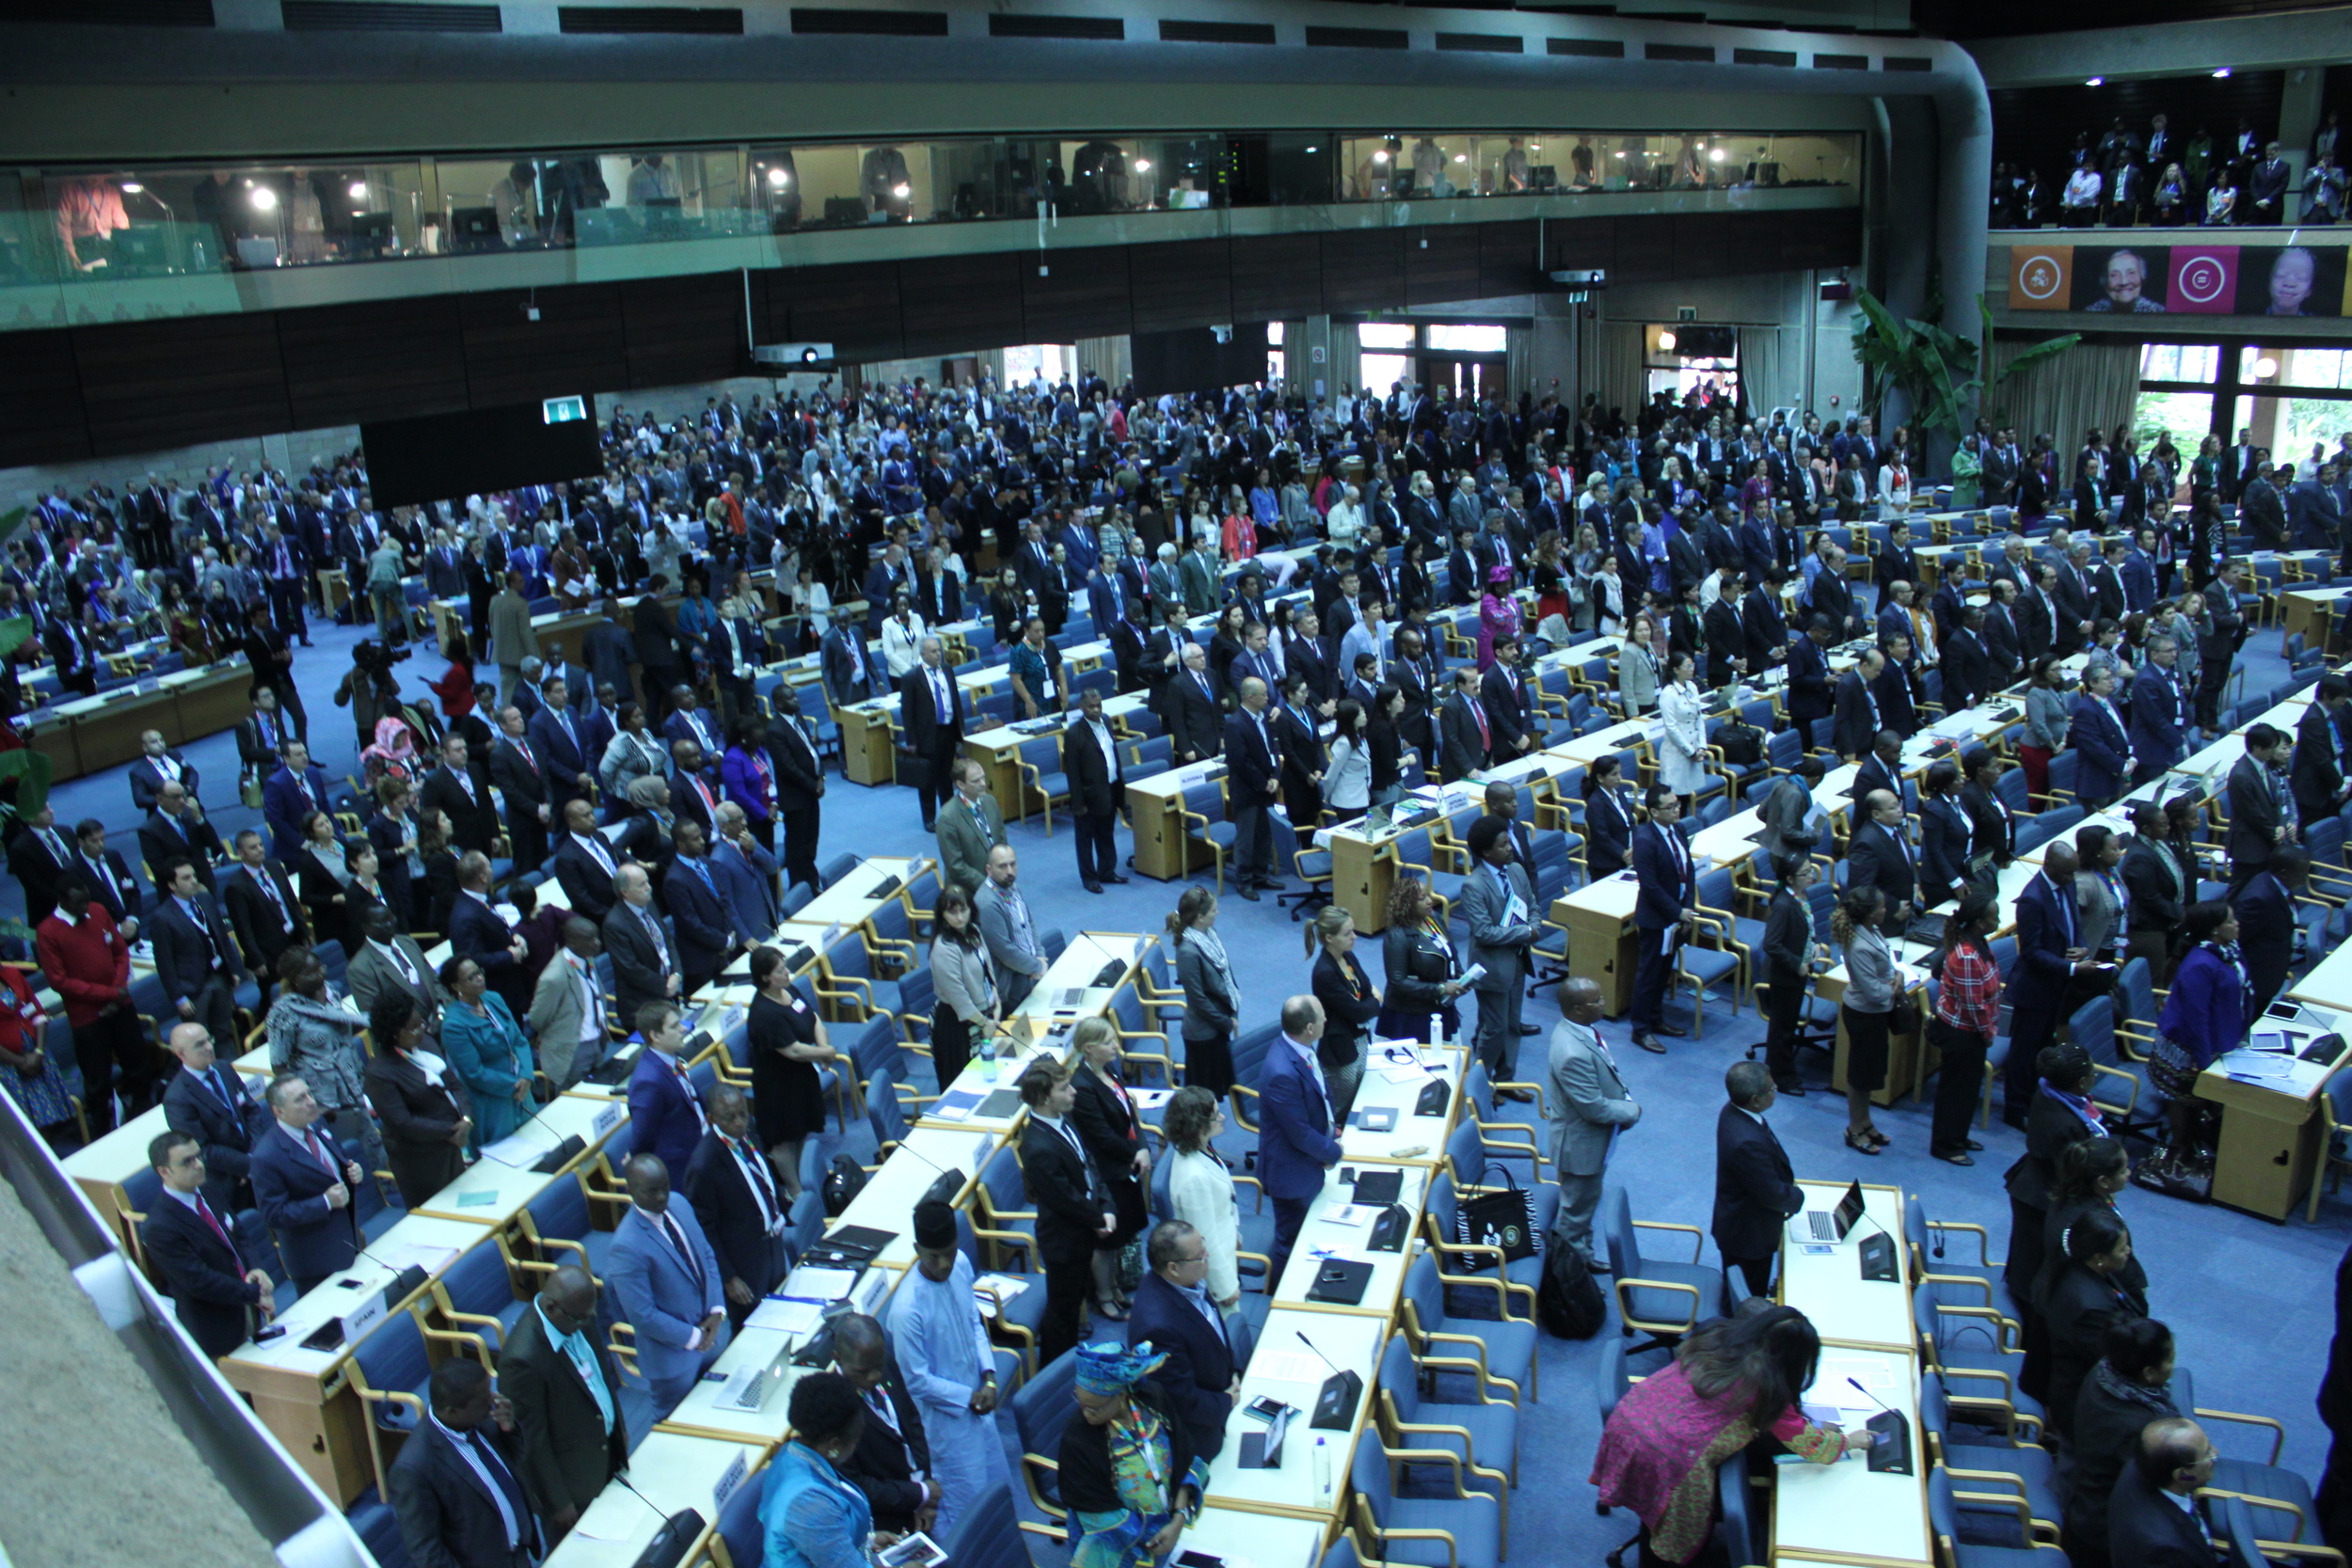 Heads of State stand for a period of silence at UNEA2 opening plenary session in honour of environmental defenders who have died.